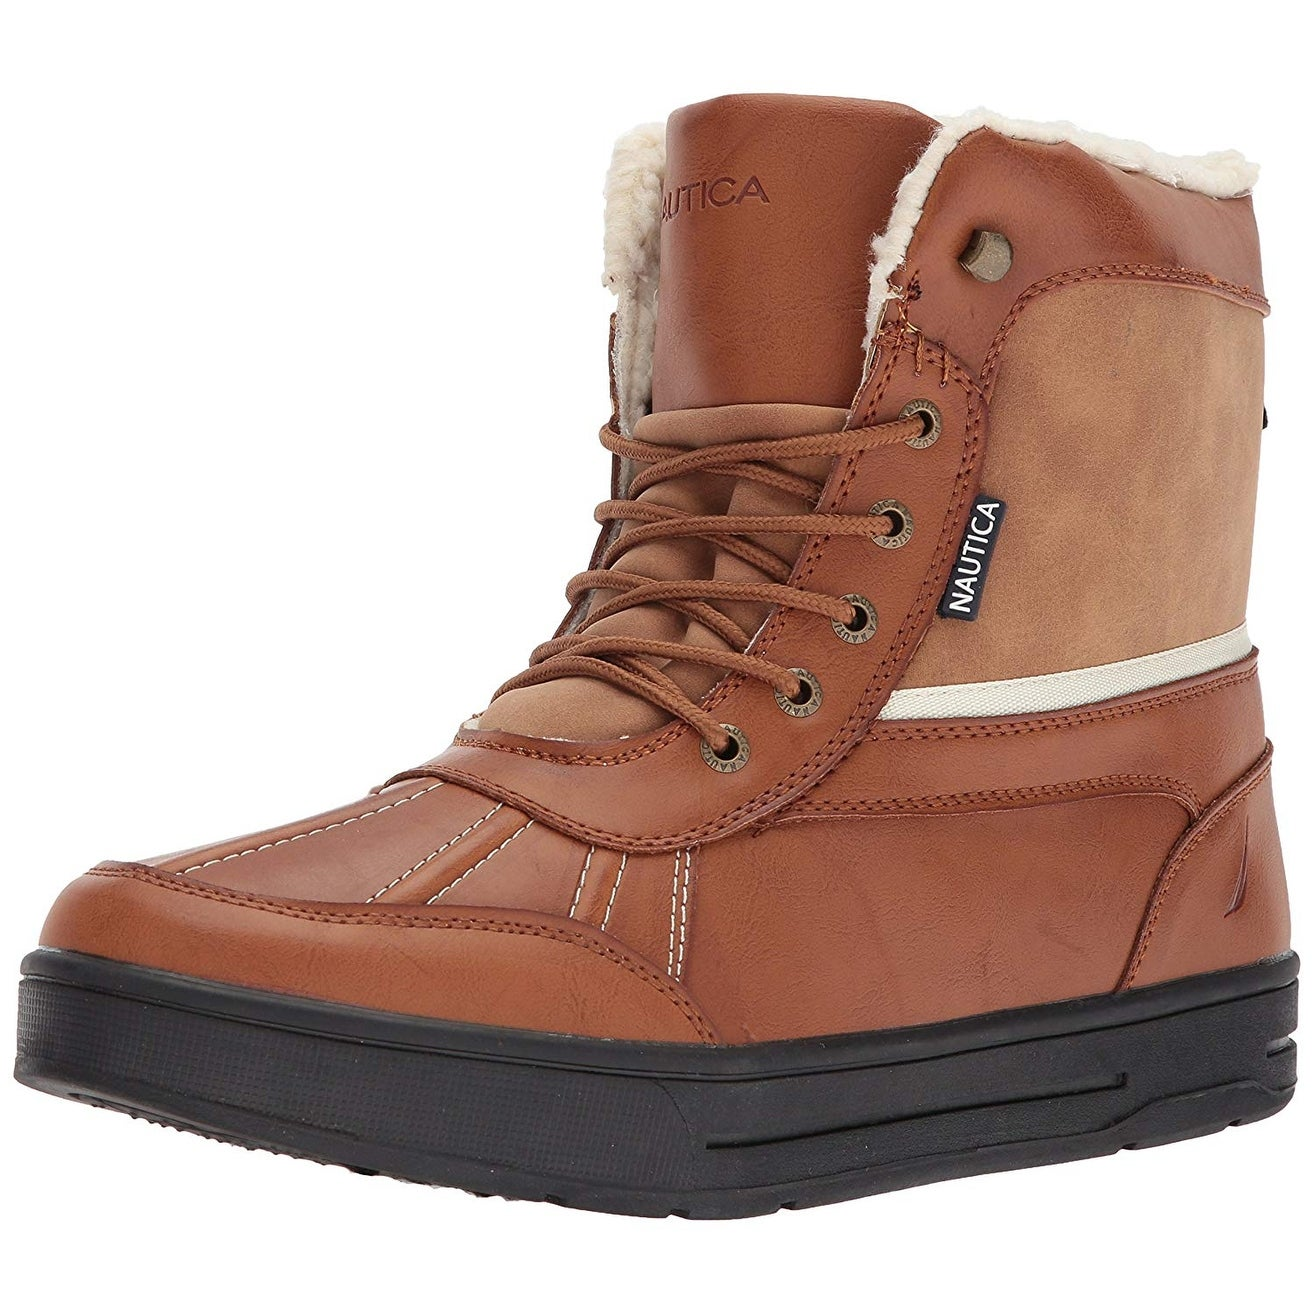 Shop Nautica Men s Lockview Ankle Boot - Free Shipping On Orders Over  45 -  Overstock - 23387975 580ee5150